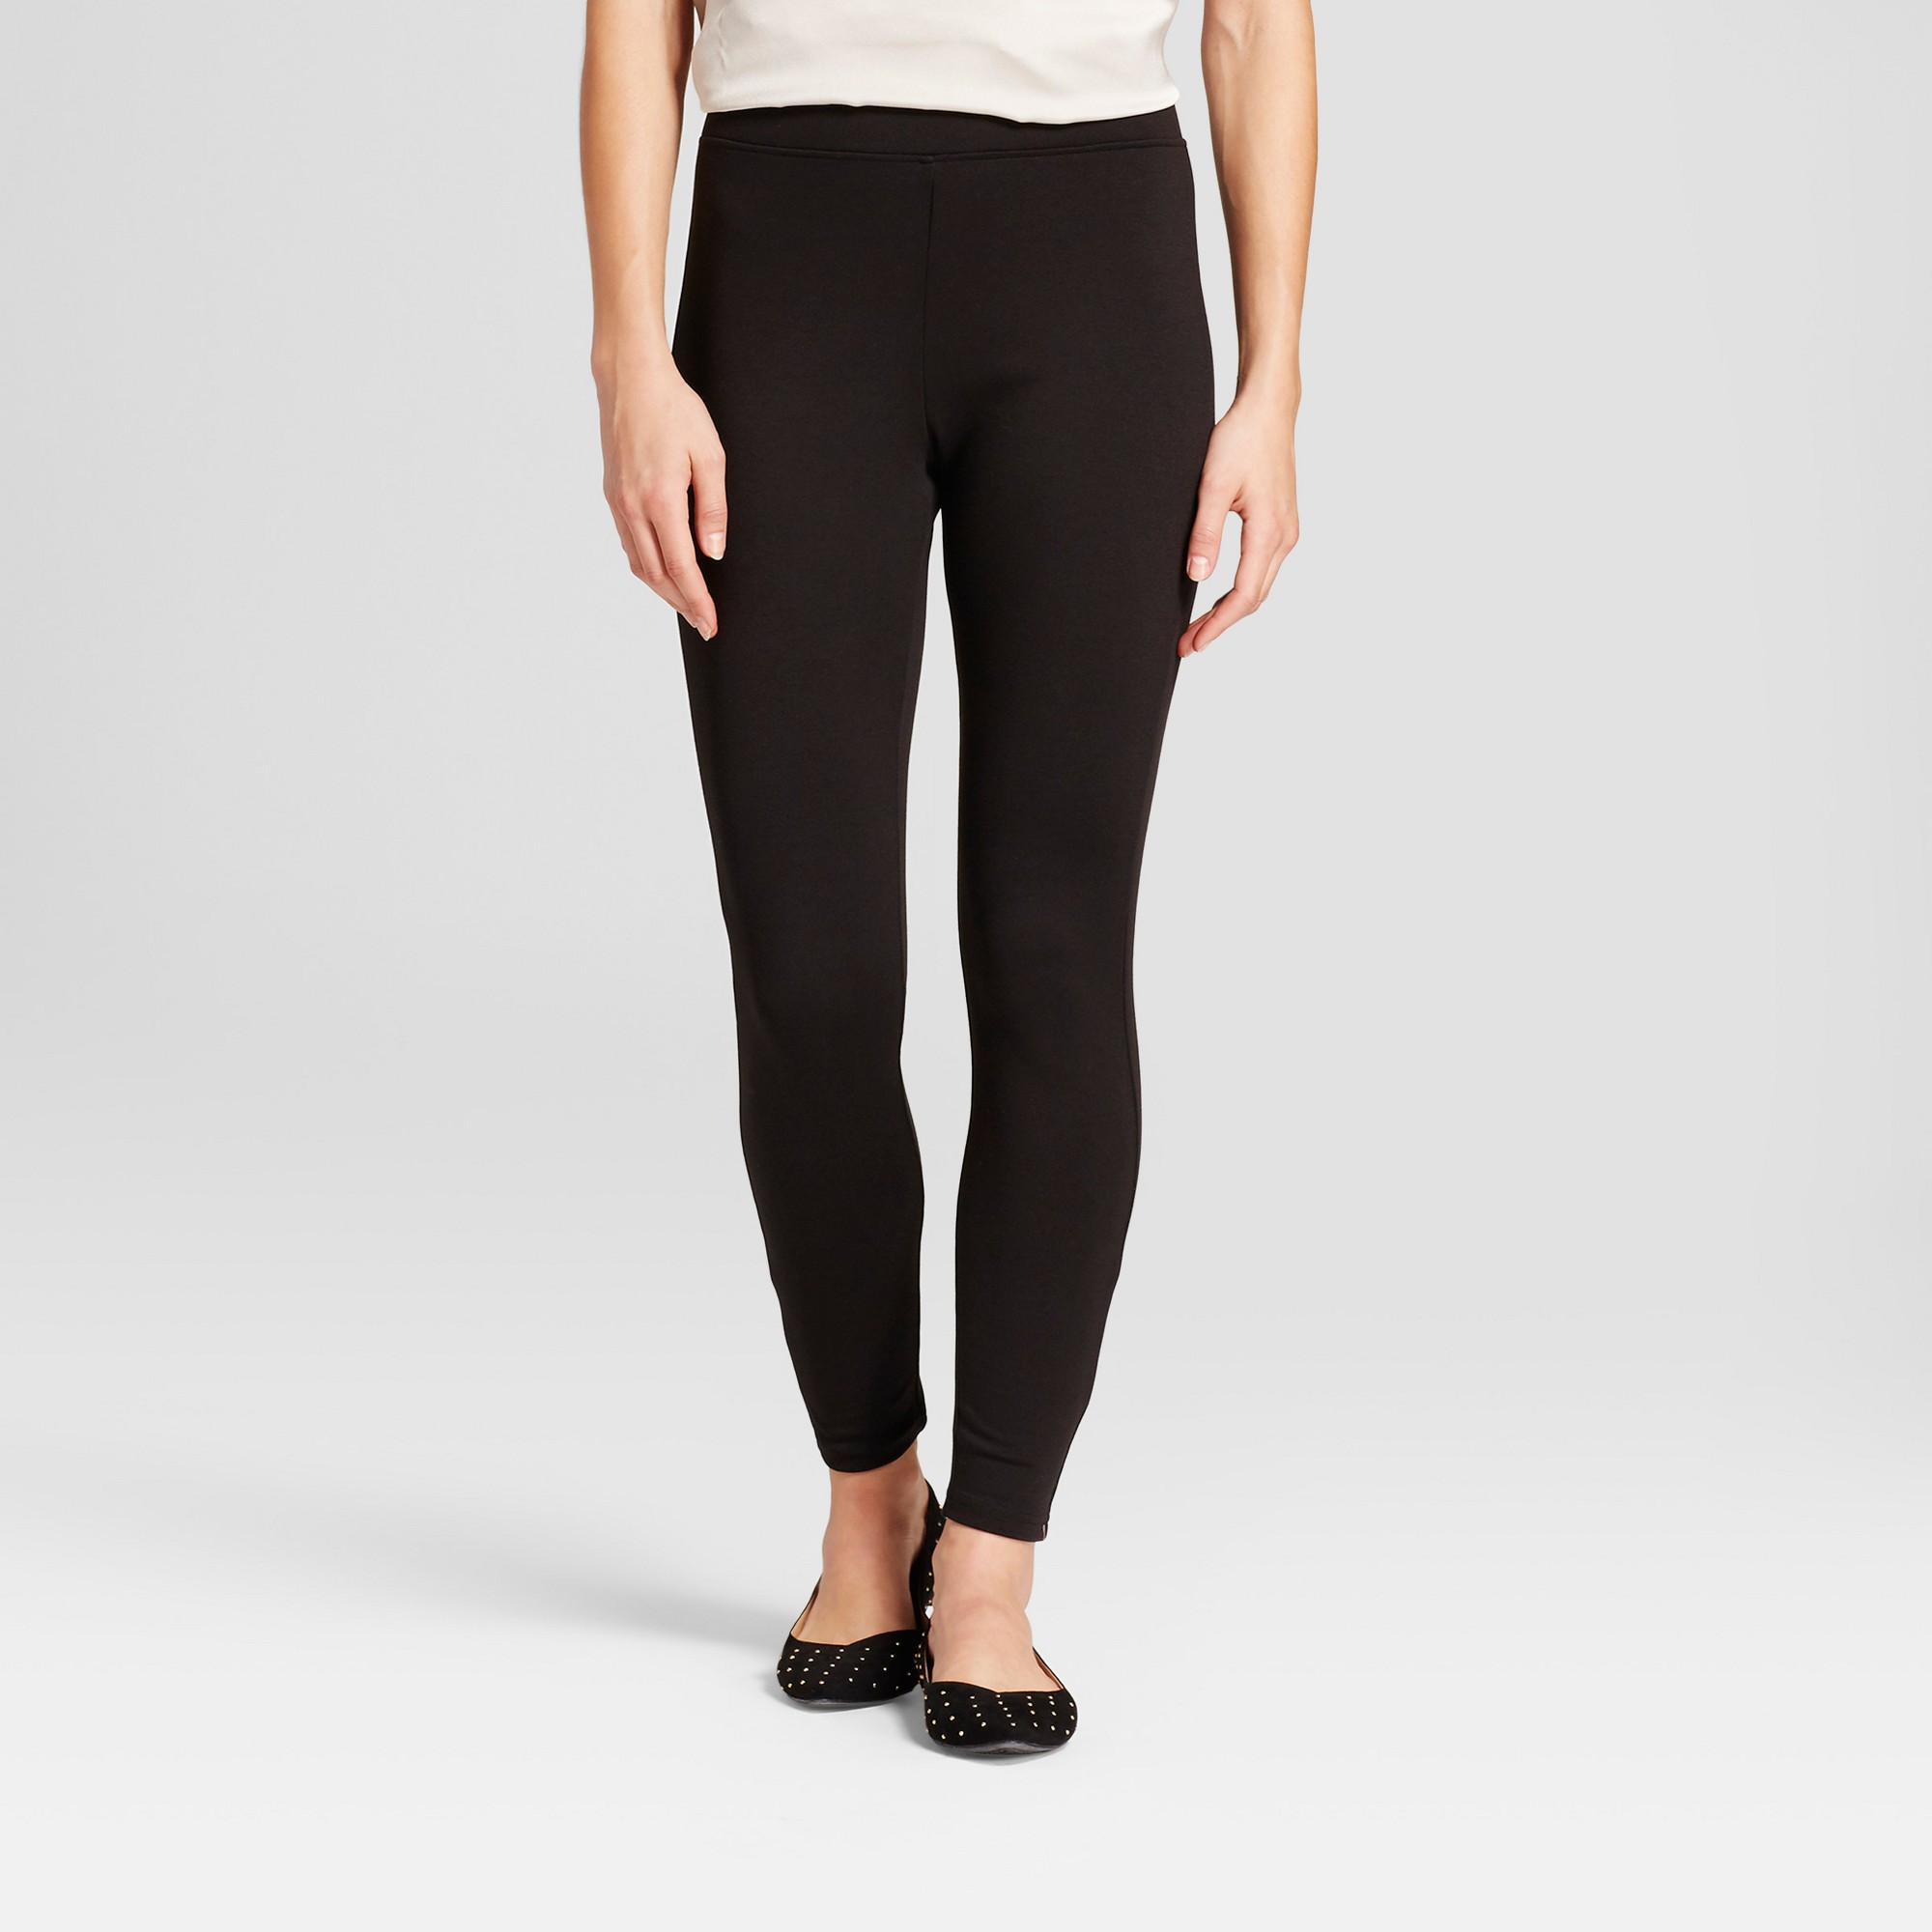 4a56d715b7f58 Women's Solid Ponte Jeggings - A New Day Black XL | Products | Ponte ...